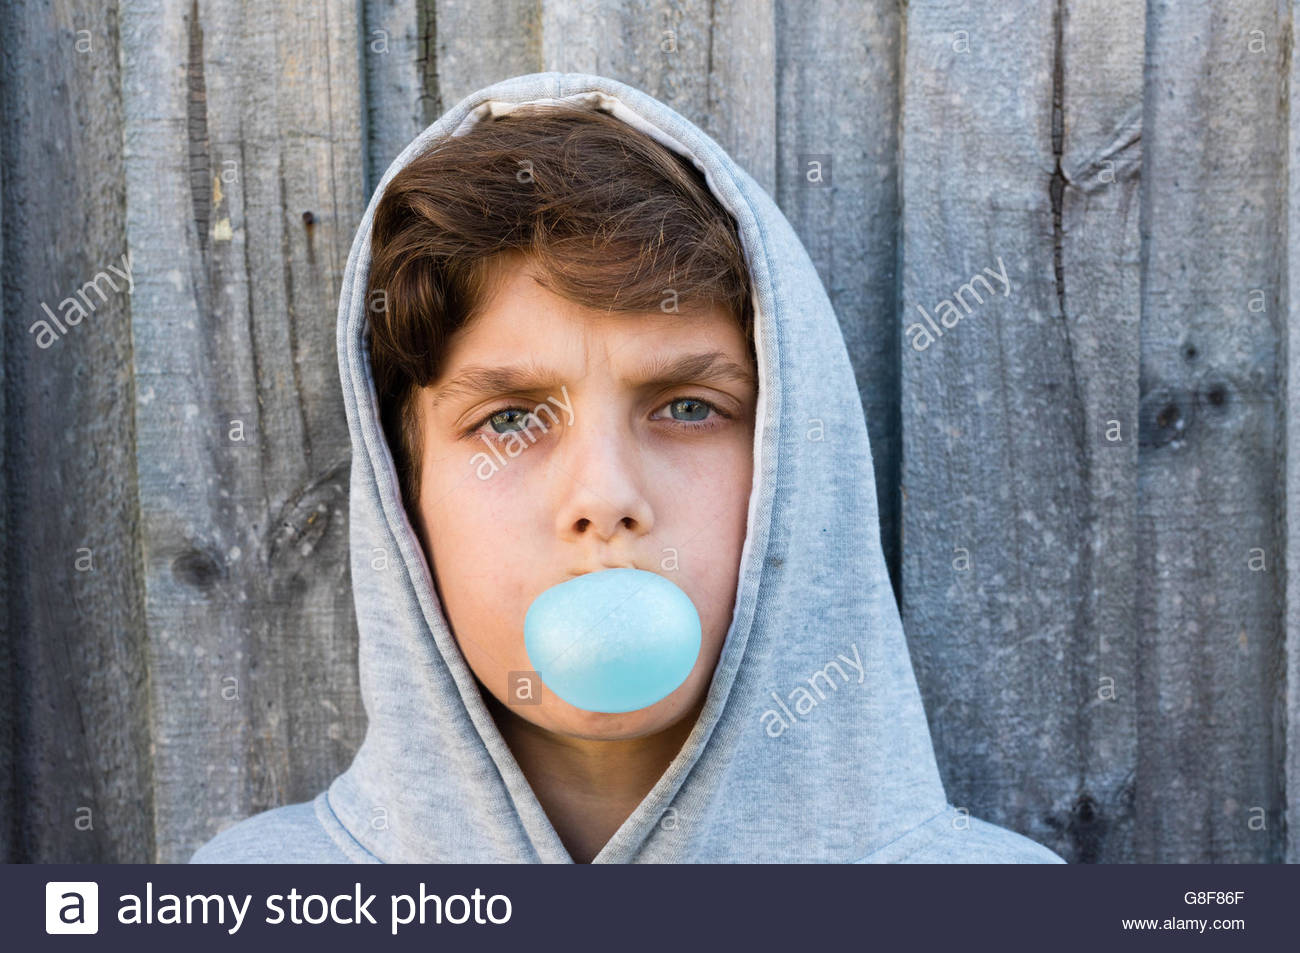 Head shot of woman blowing bubble gum bleu contre une clôture en bois gris Photo Stock